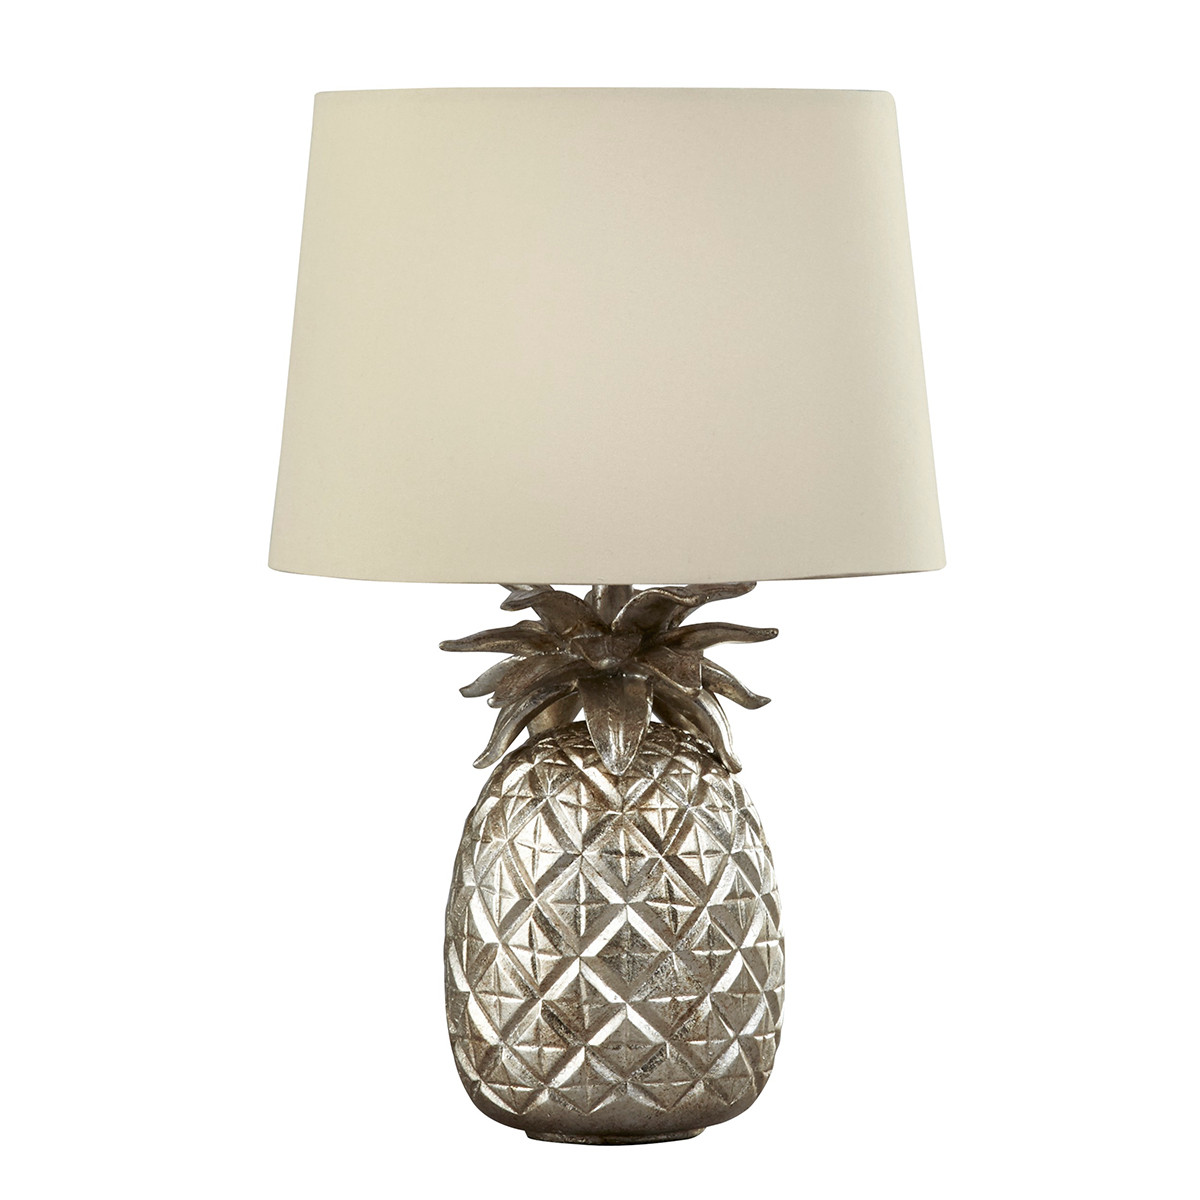 5 of the best pineapple home accessories decorating